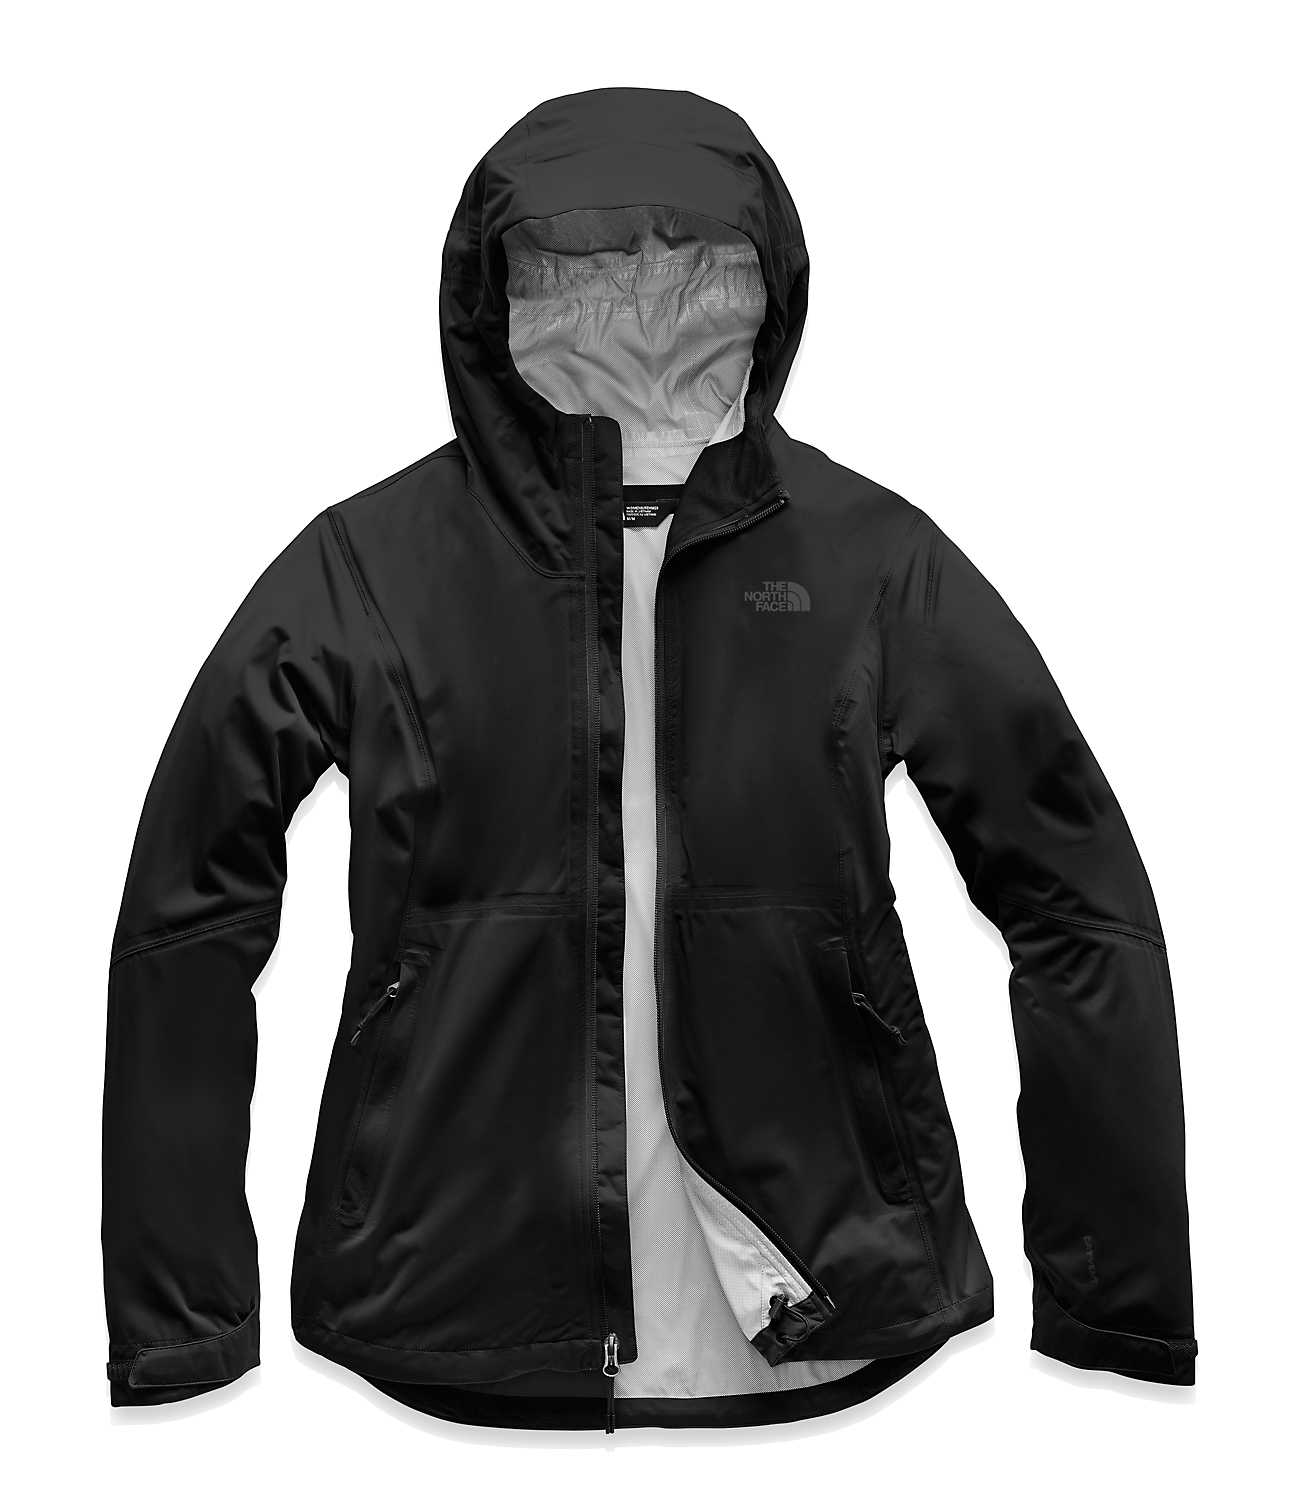 THE NORTH FACE Women's Outerwear Northface Women's Allproof Stretch Jacket || David's Clothing